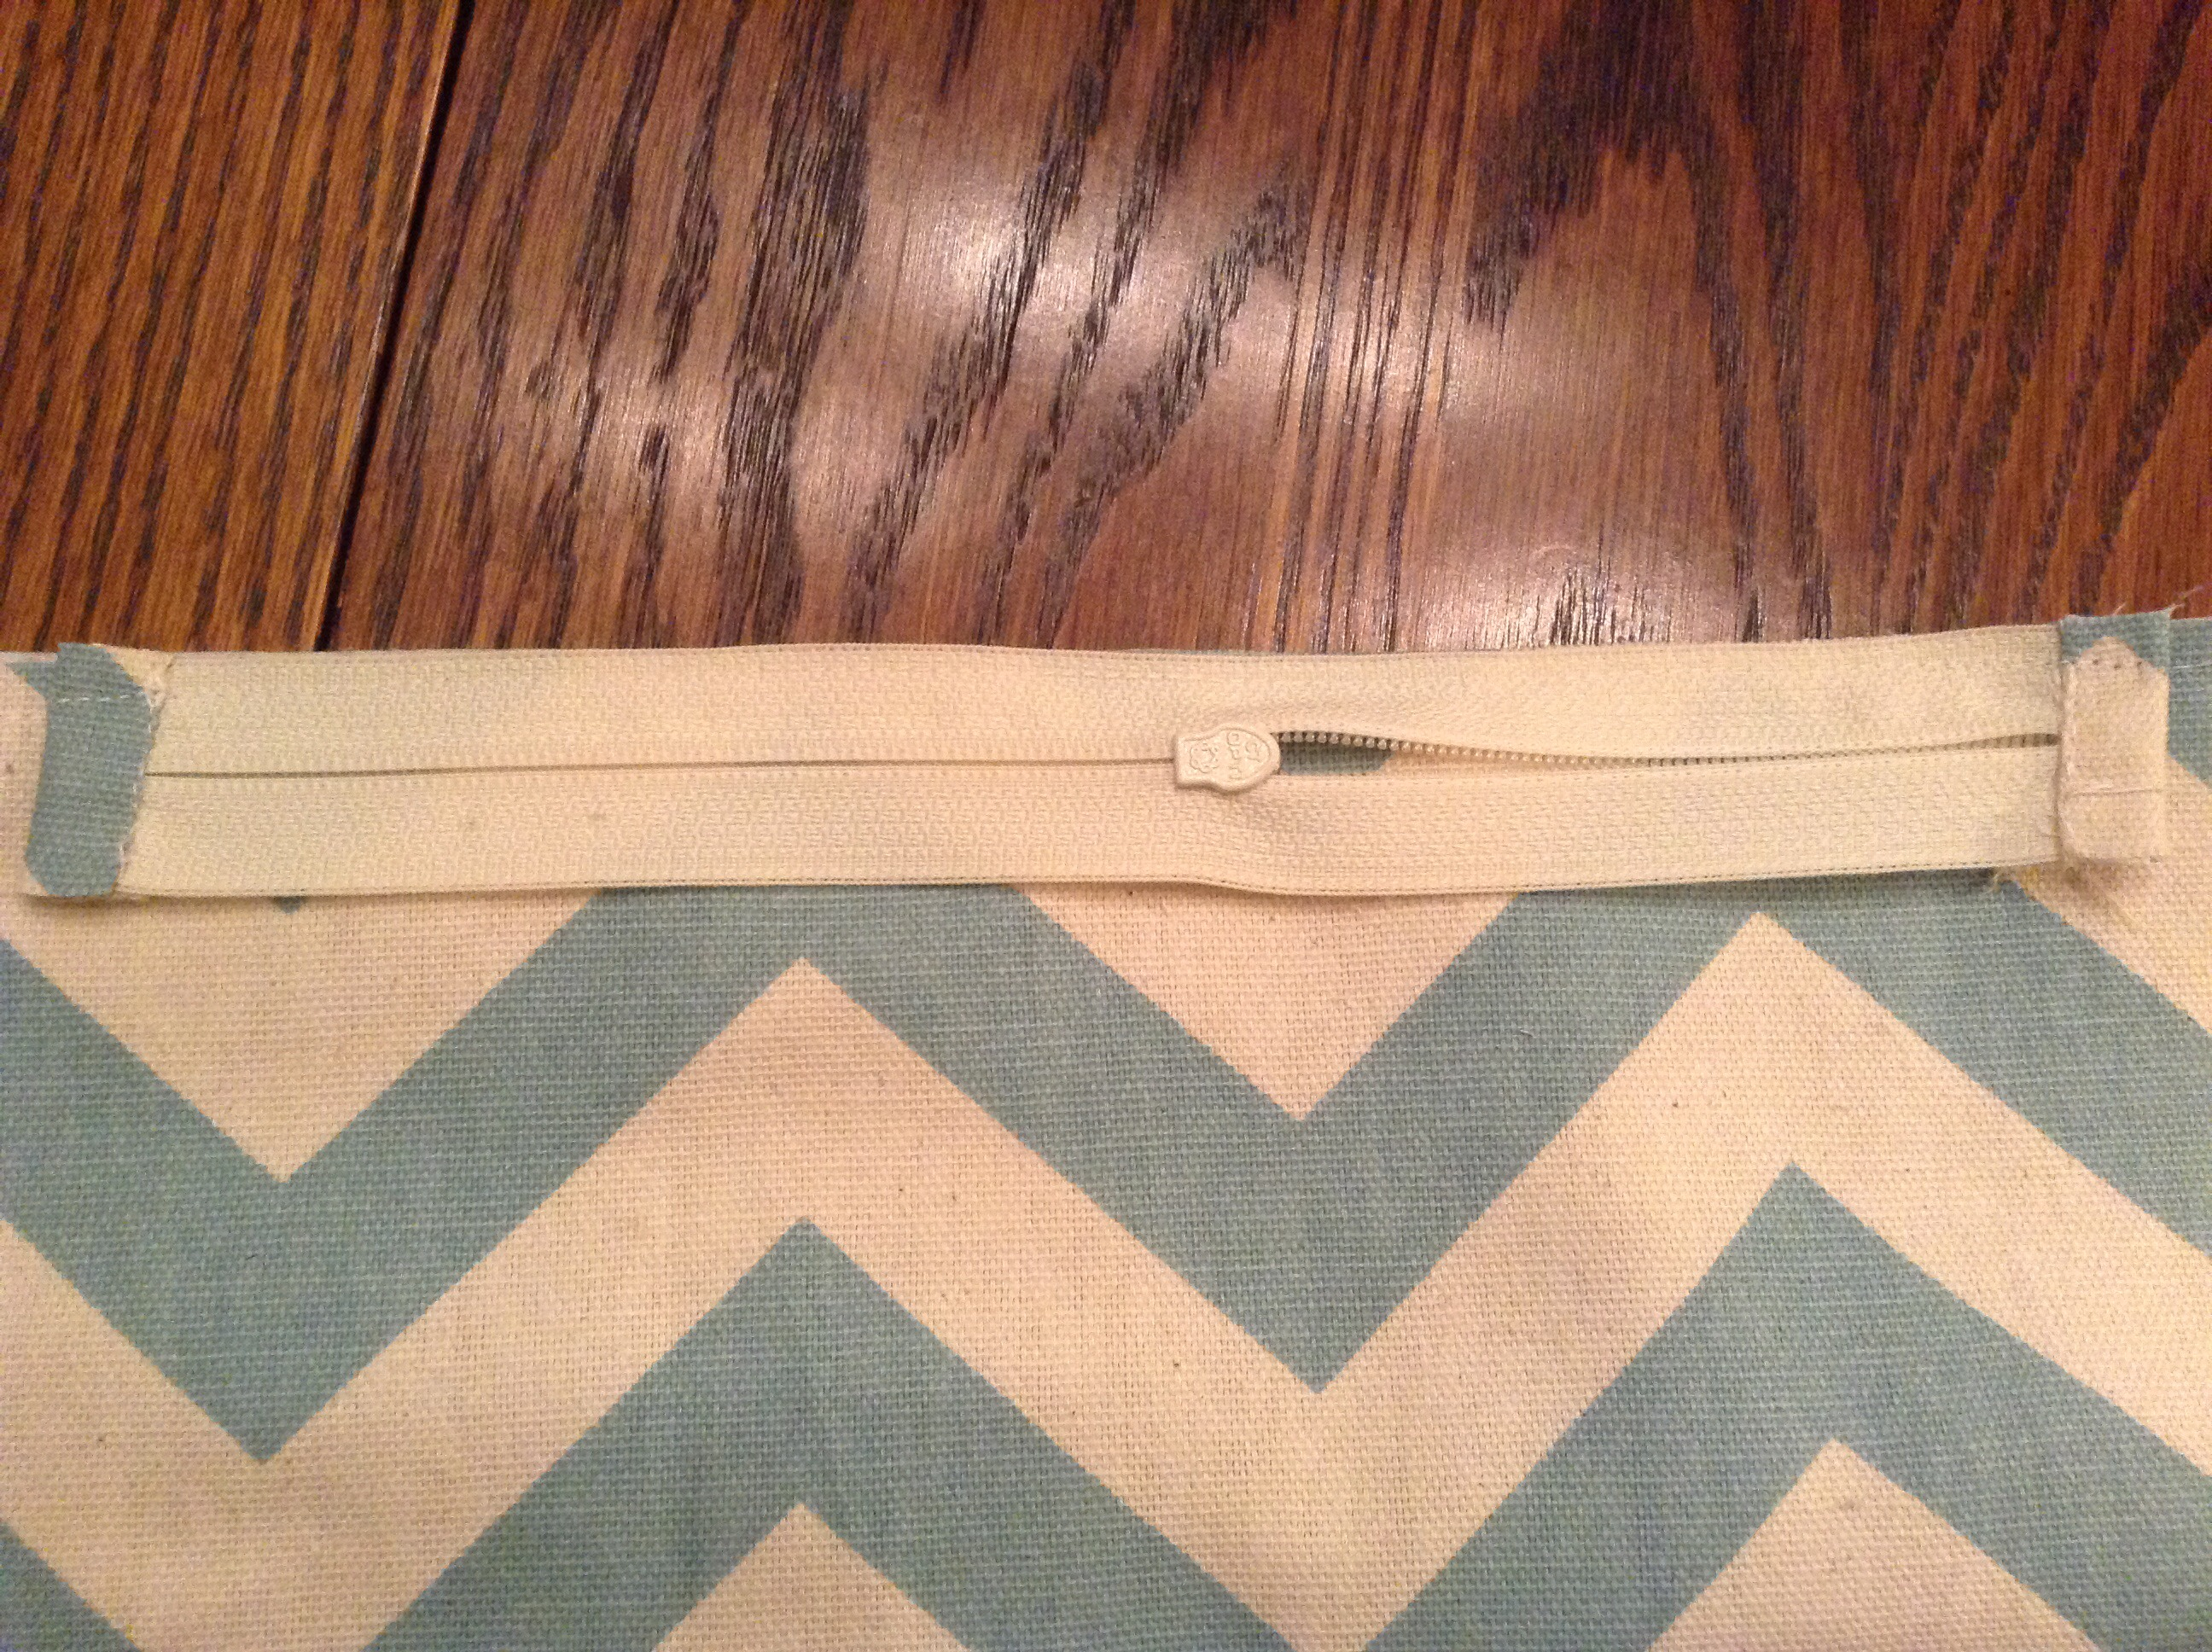 Picture of Stitch the Zipper On